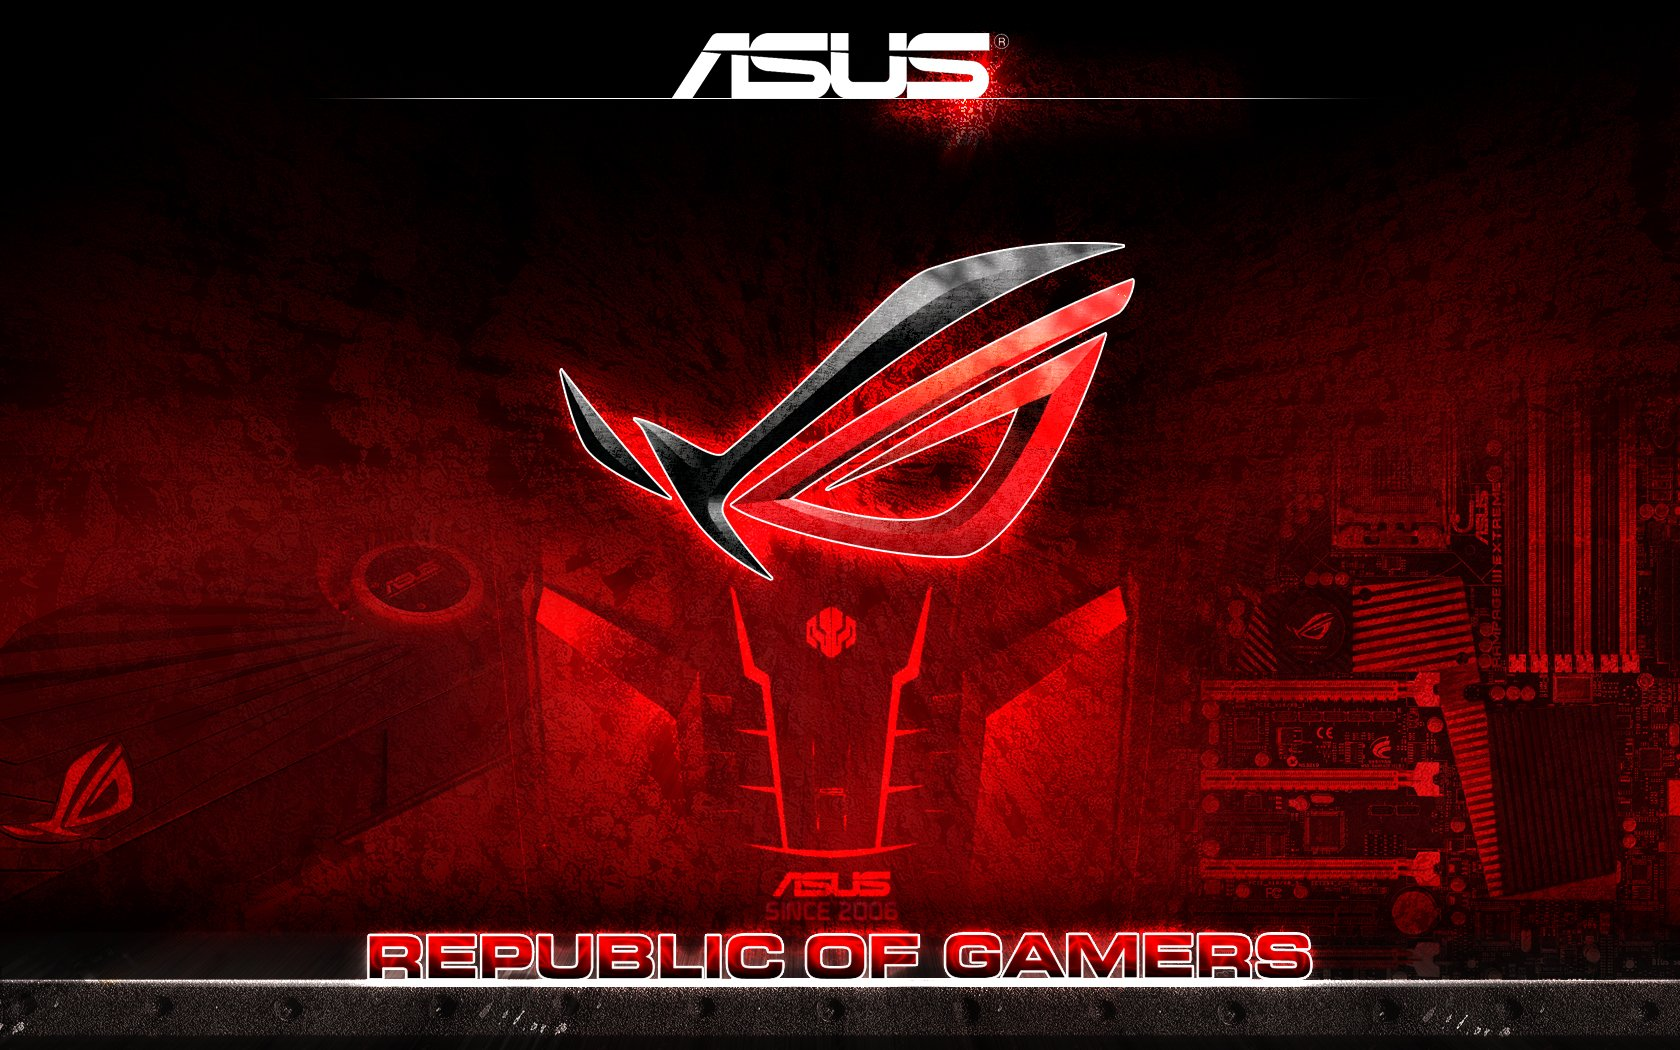 Republic of gaming wallpaper 5760x1080 wallpapersafari for Fond ecran gaming